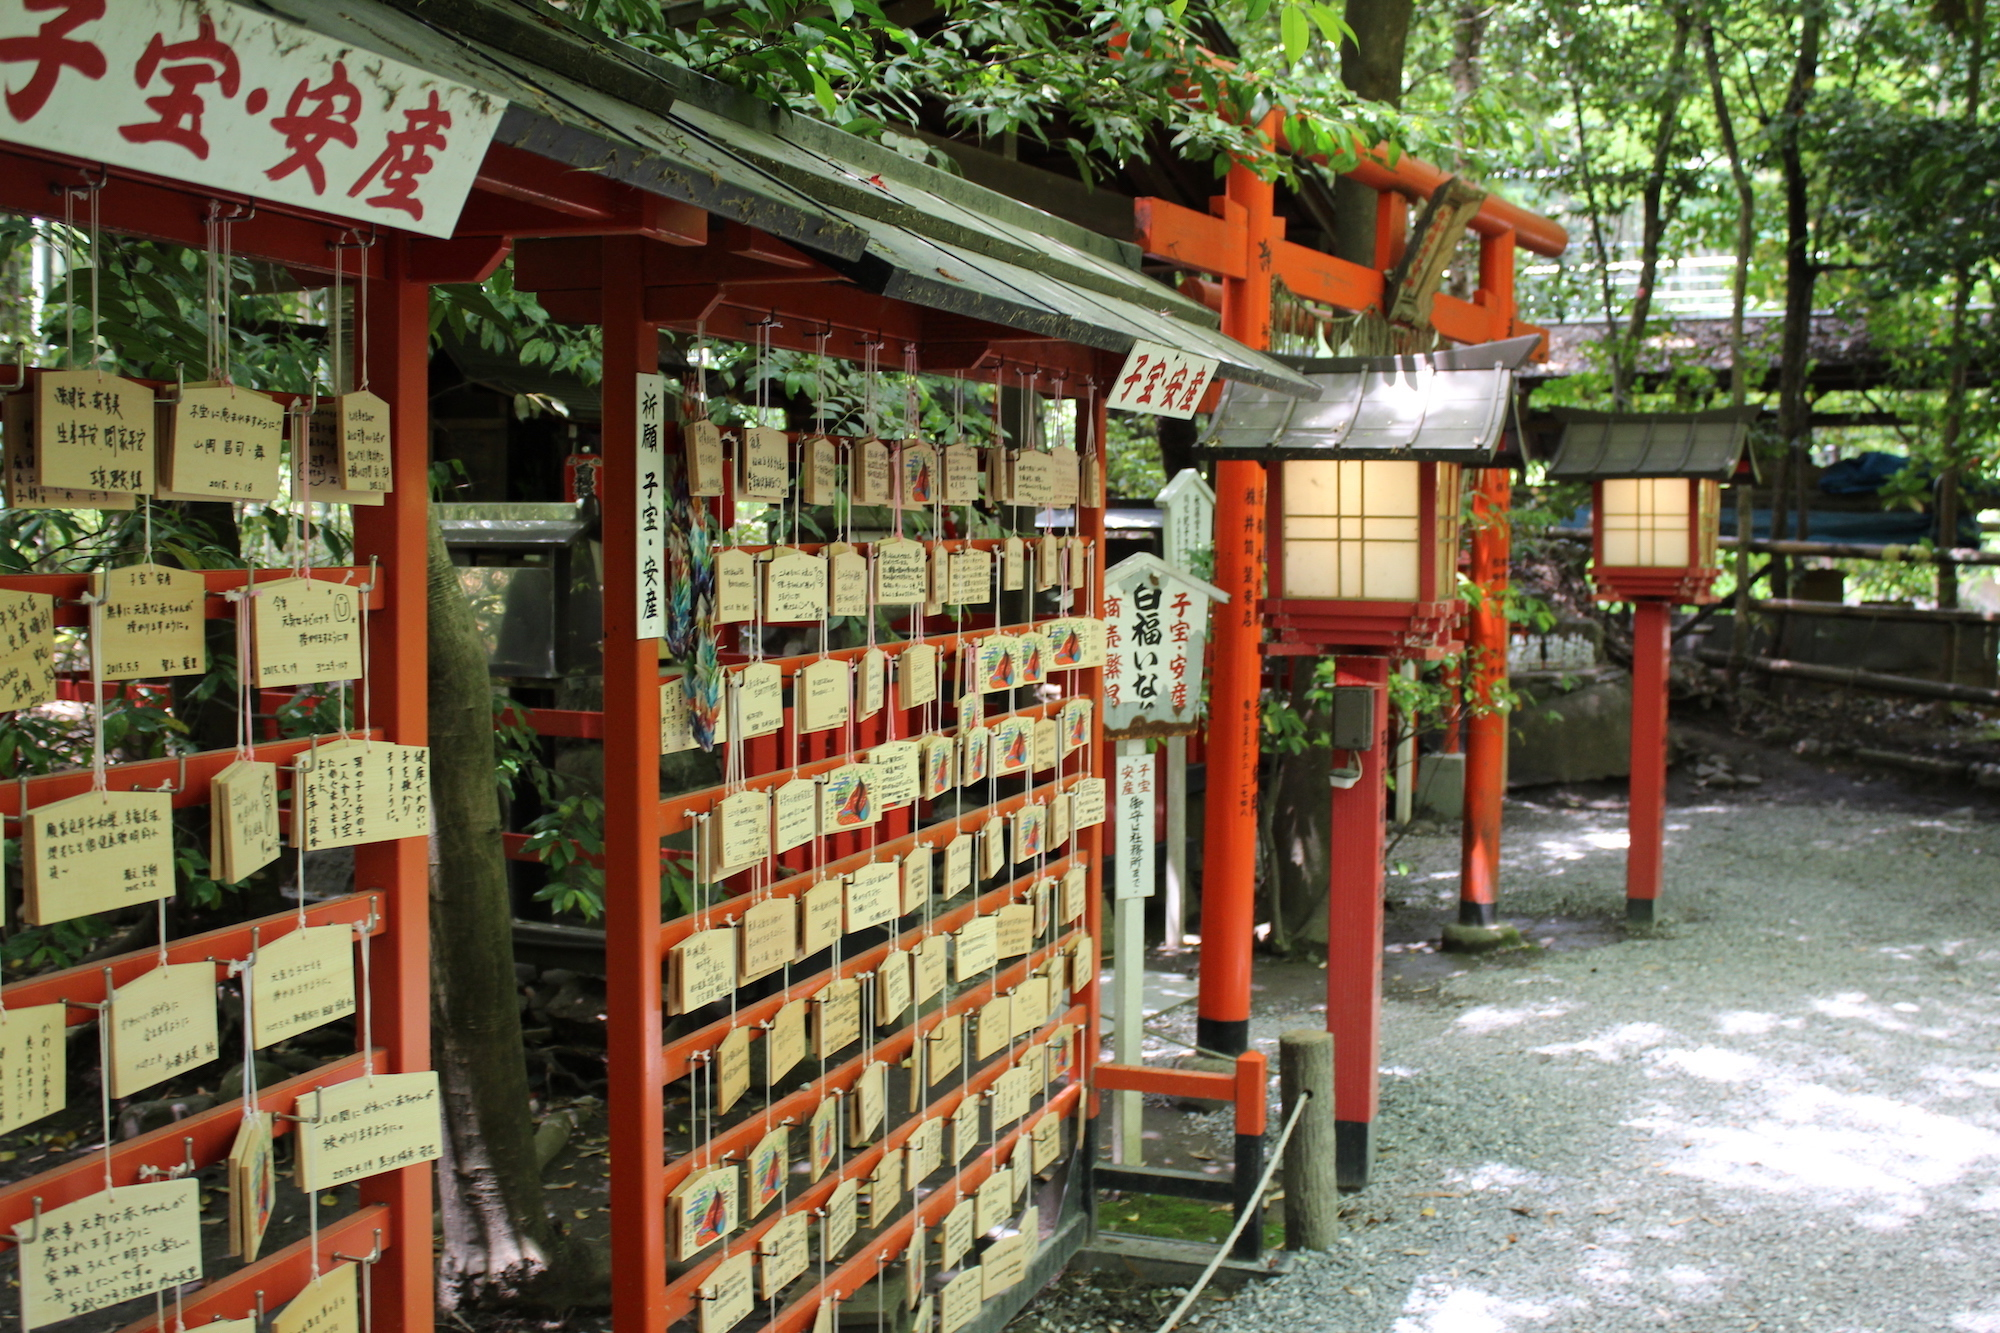 Rows of Ema at a small Japanese shrine